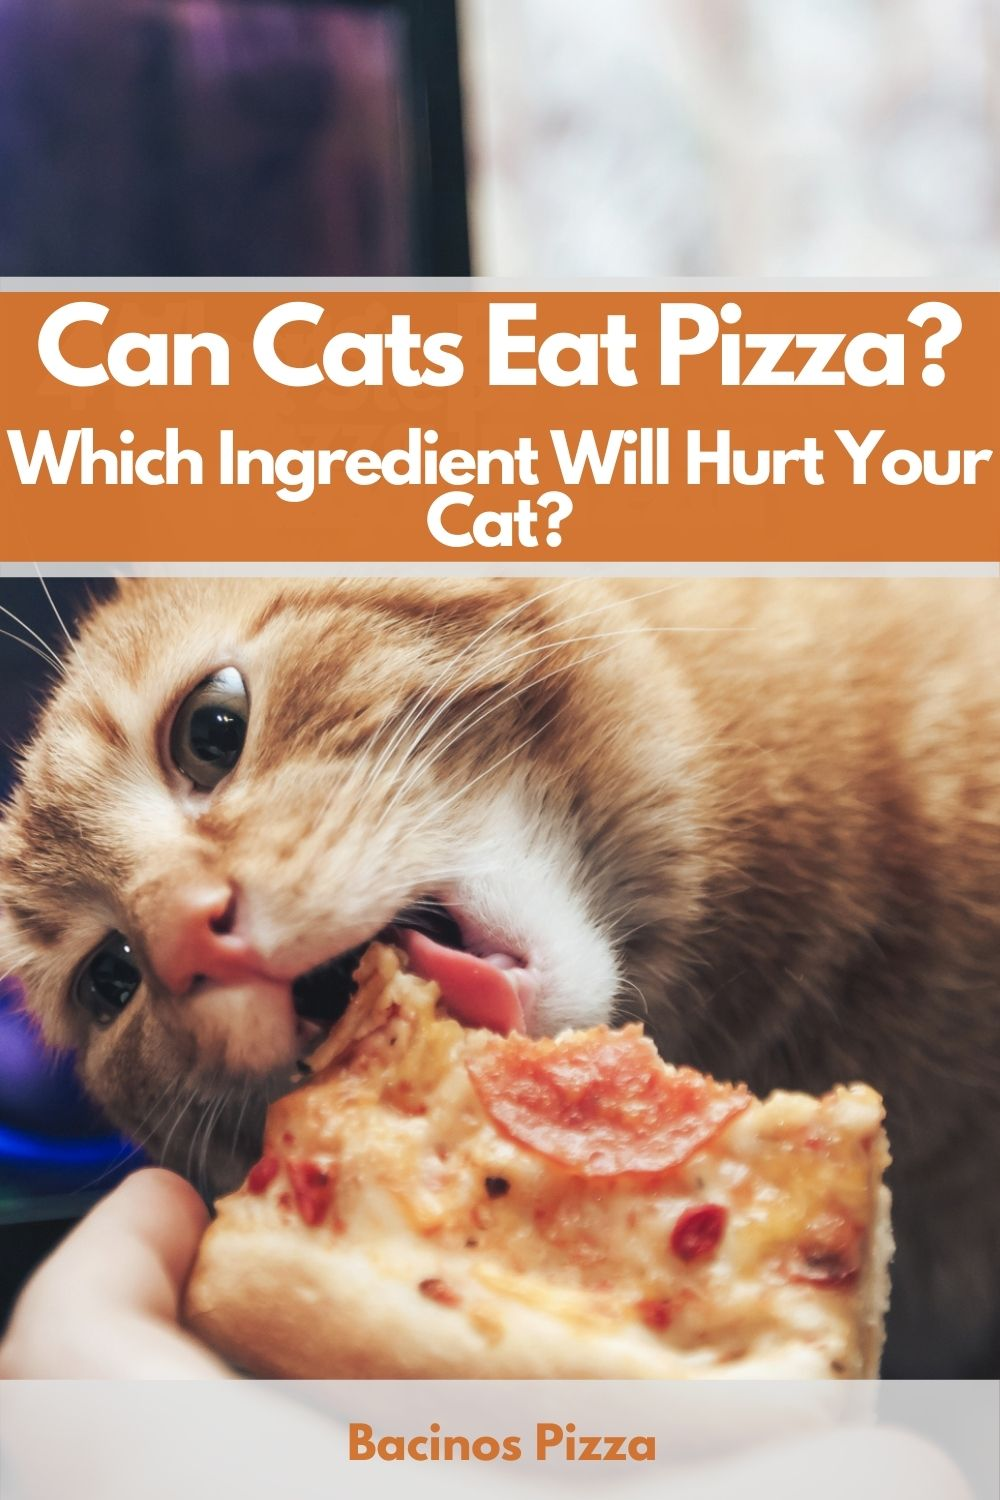 Can Cats Eat Pizza Which Ingredient Will Hurt Your Cat pin